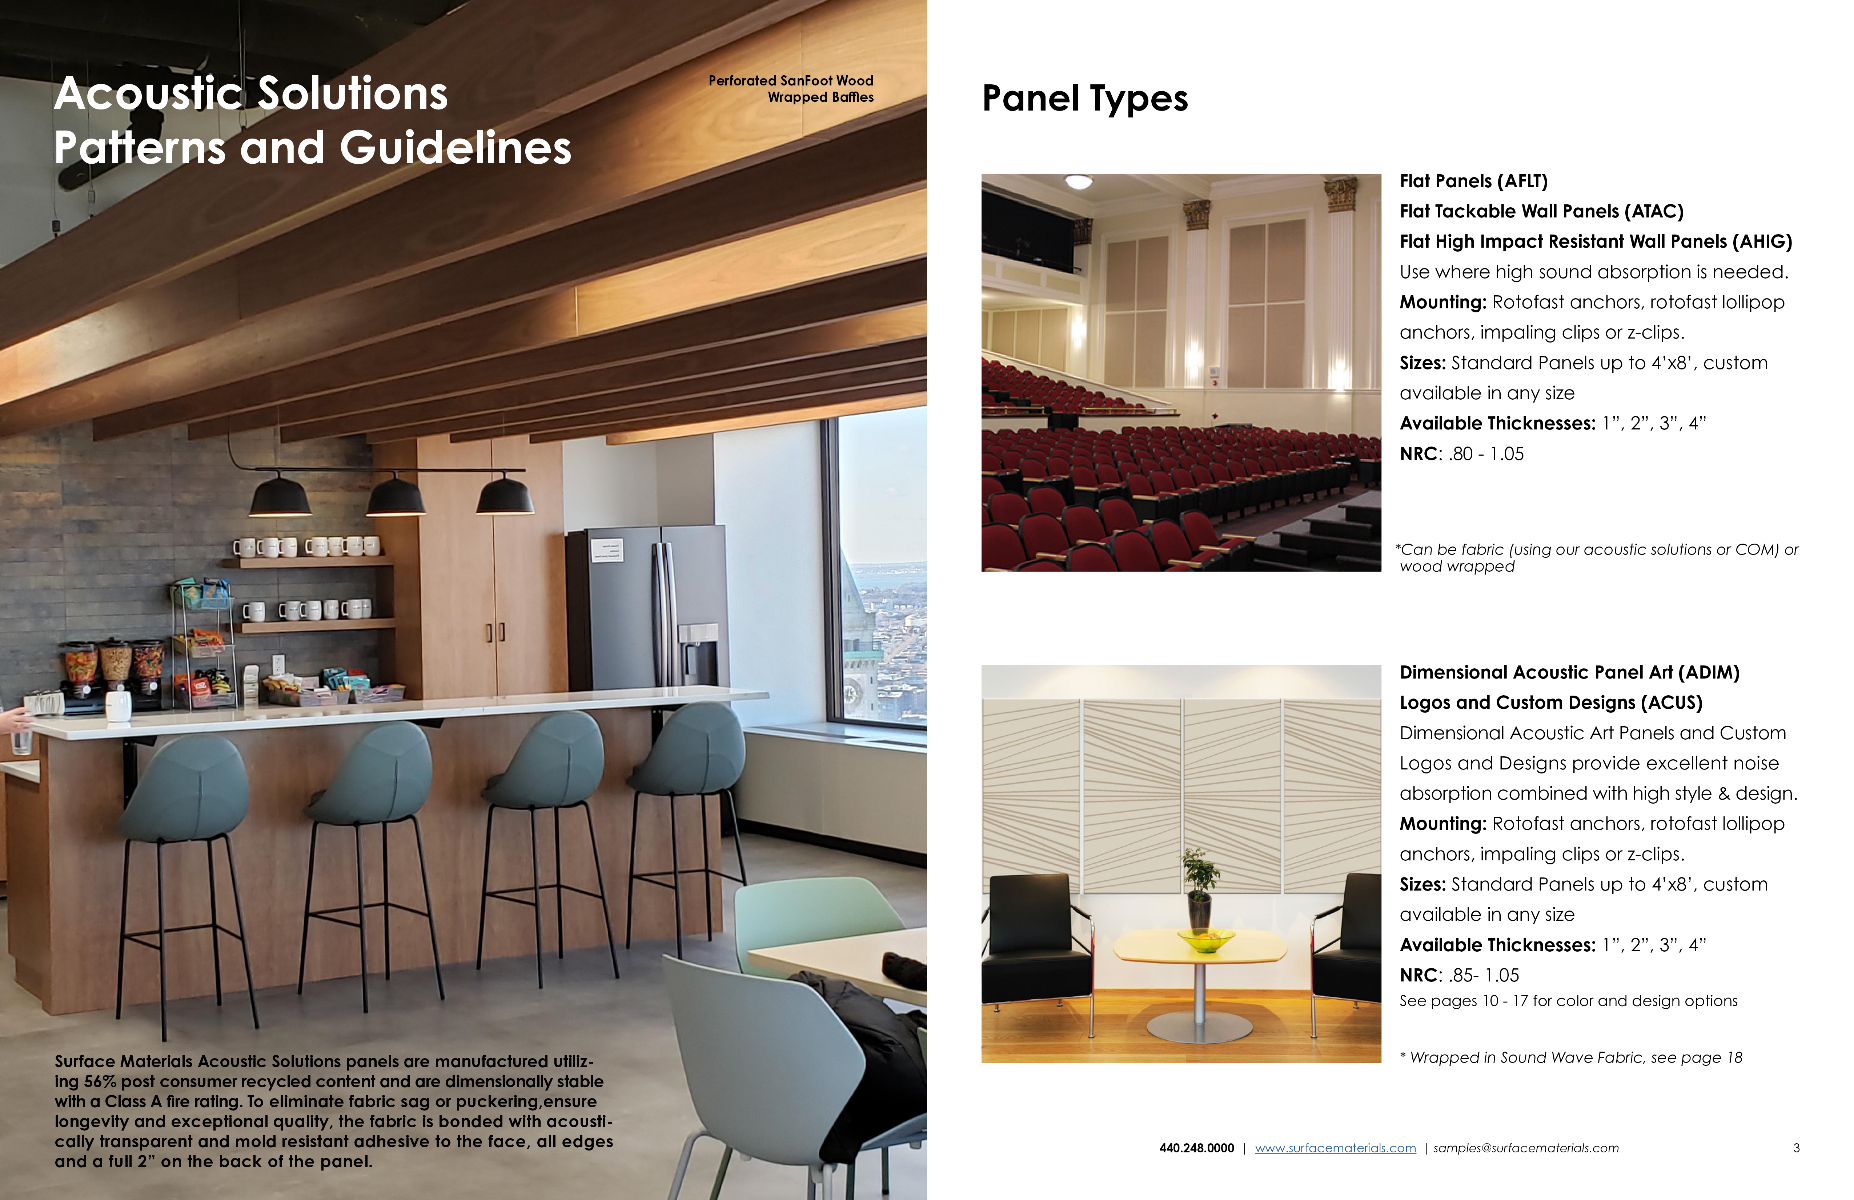 Second Page of Acoustic Solutions Brochure